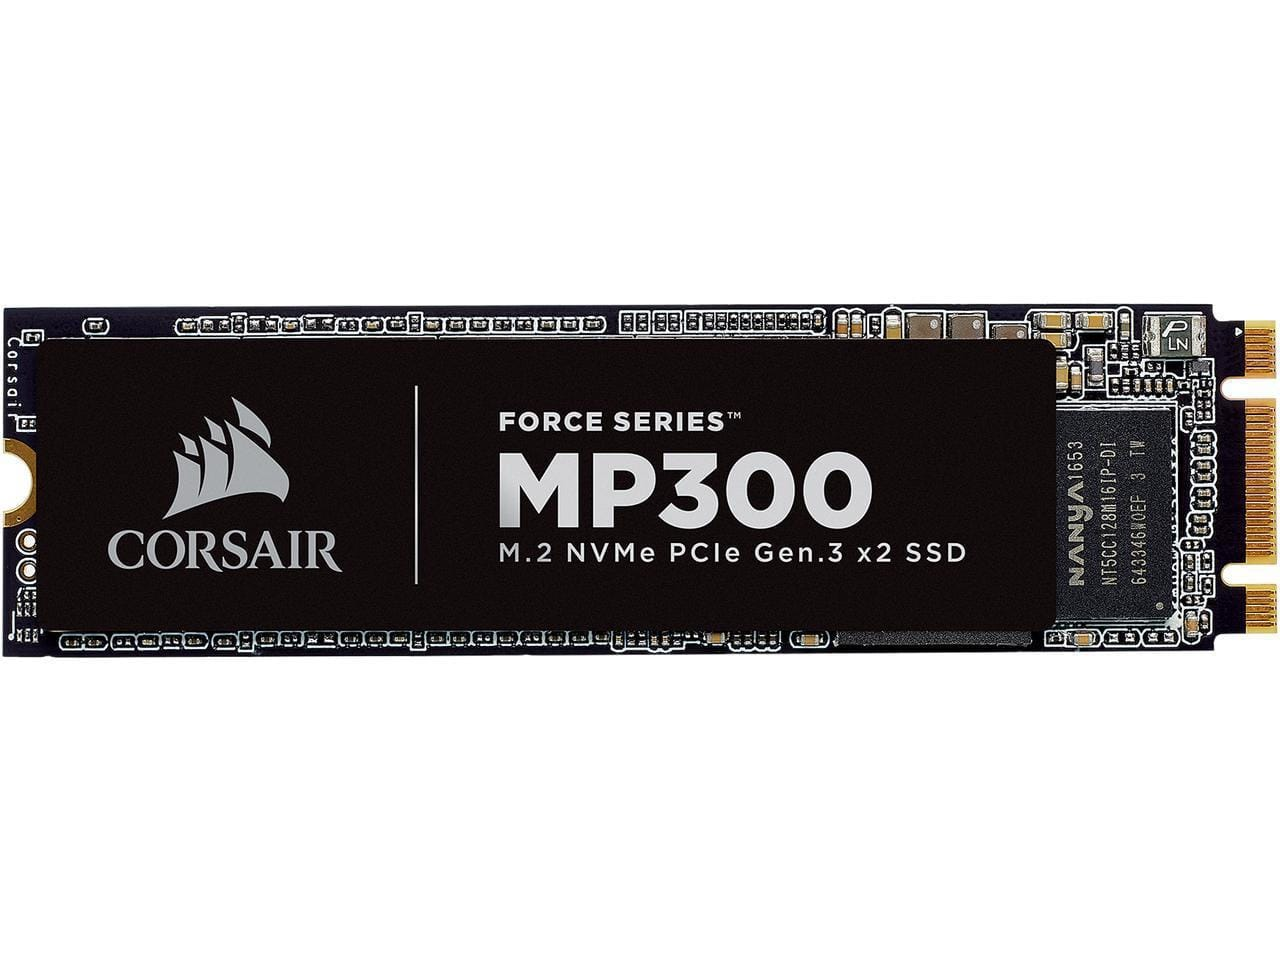 Corsair Force MP300 M.2 2280 120GB PCI-Express 3.0 x2, NVME 1.3 3D TLC Internal Solid State Drive (SSD) $40.99, 240GB $67.99